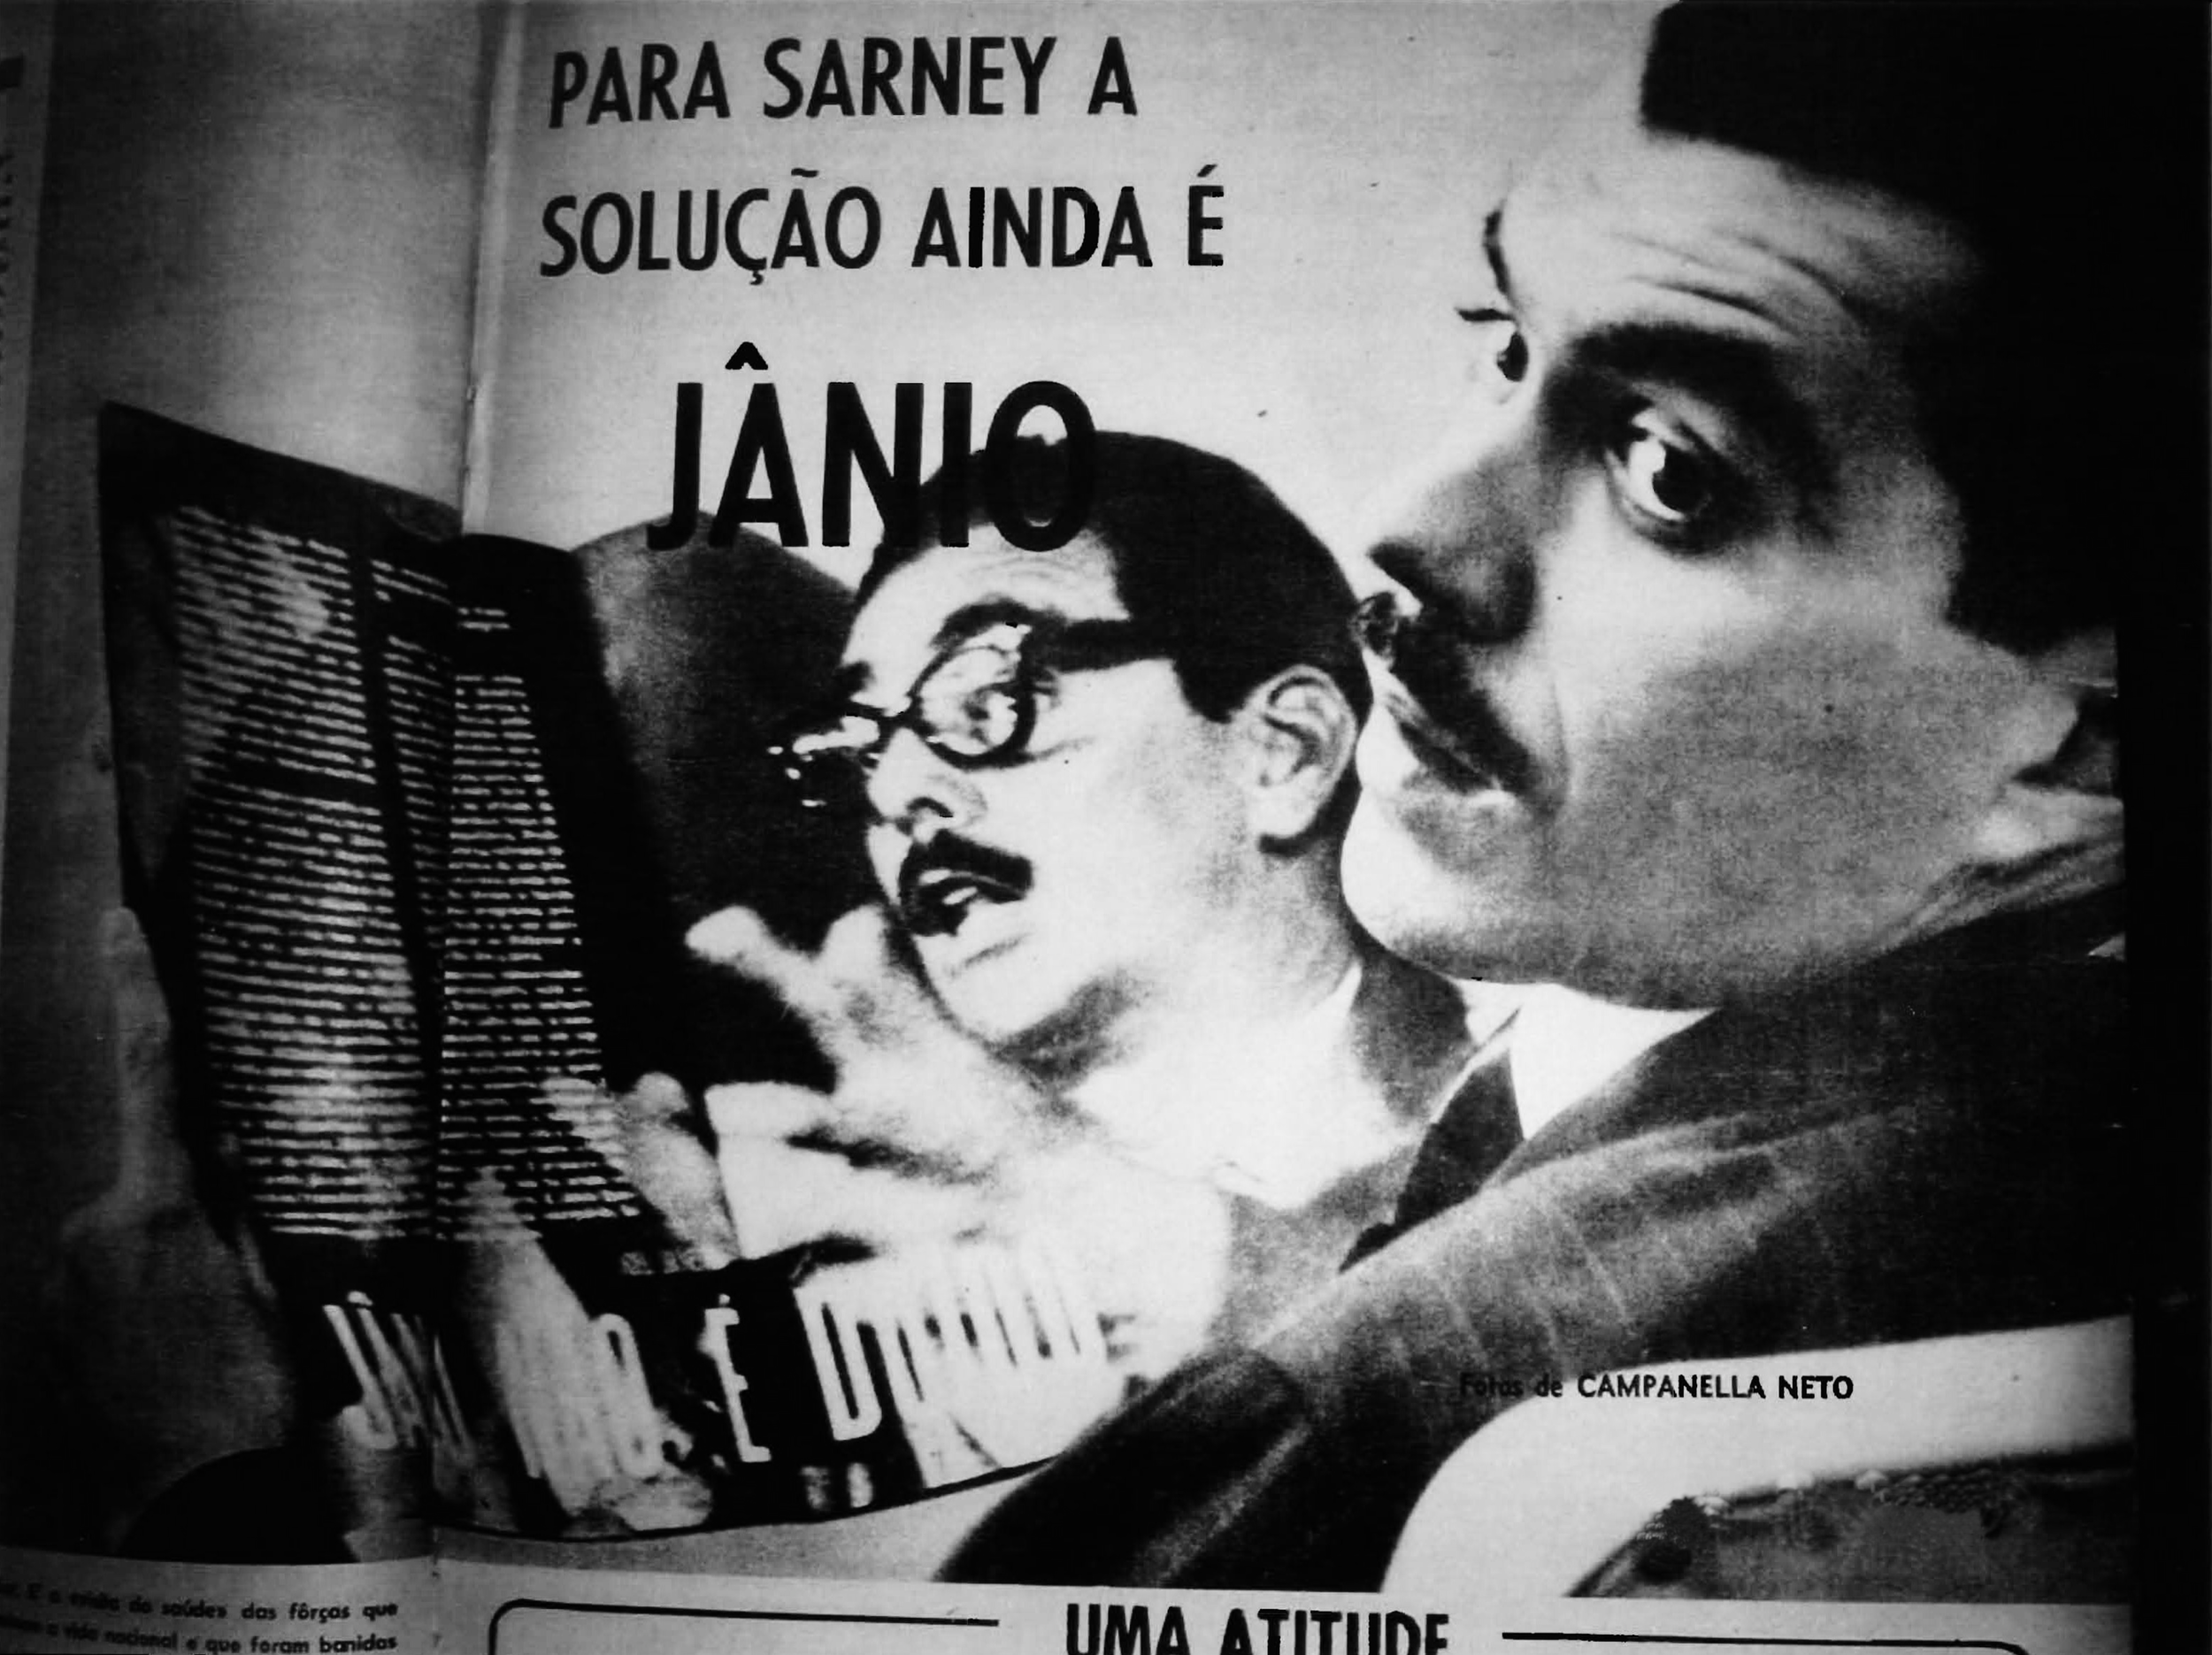 A Página do Sarney